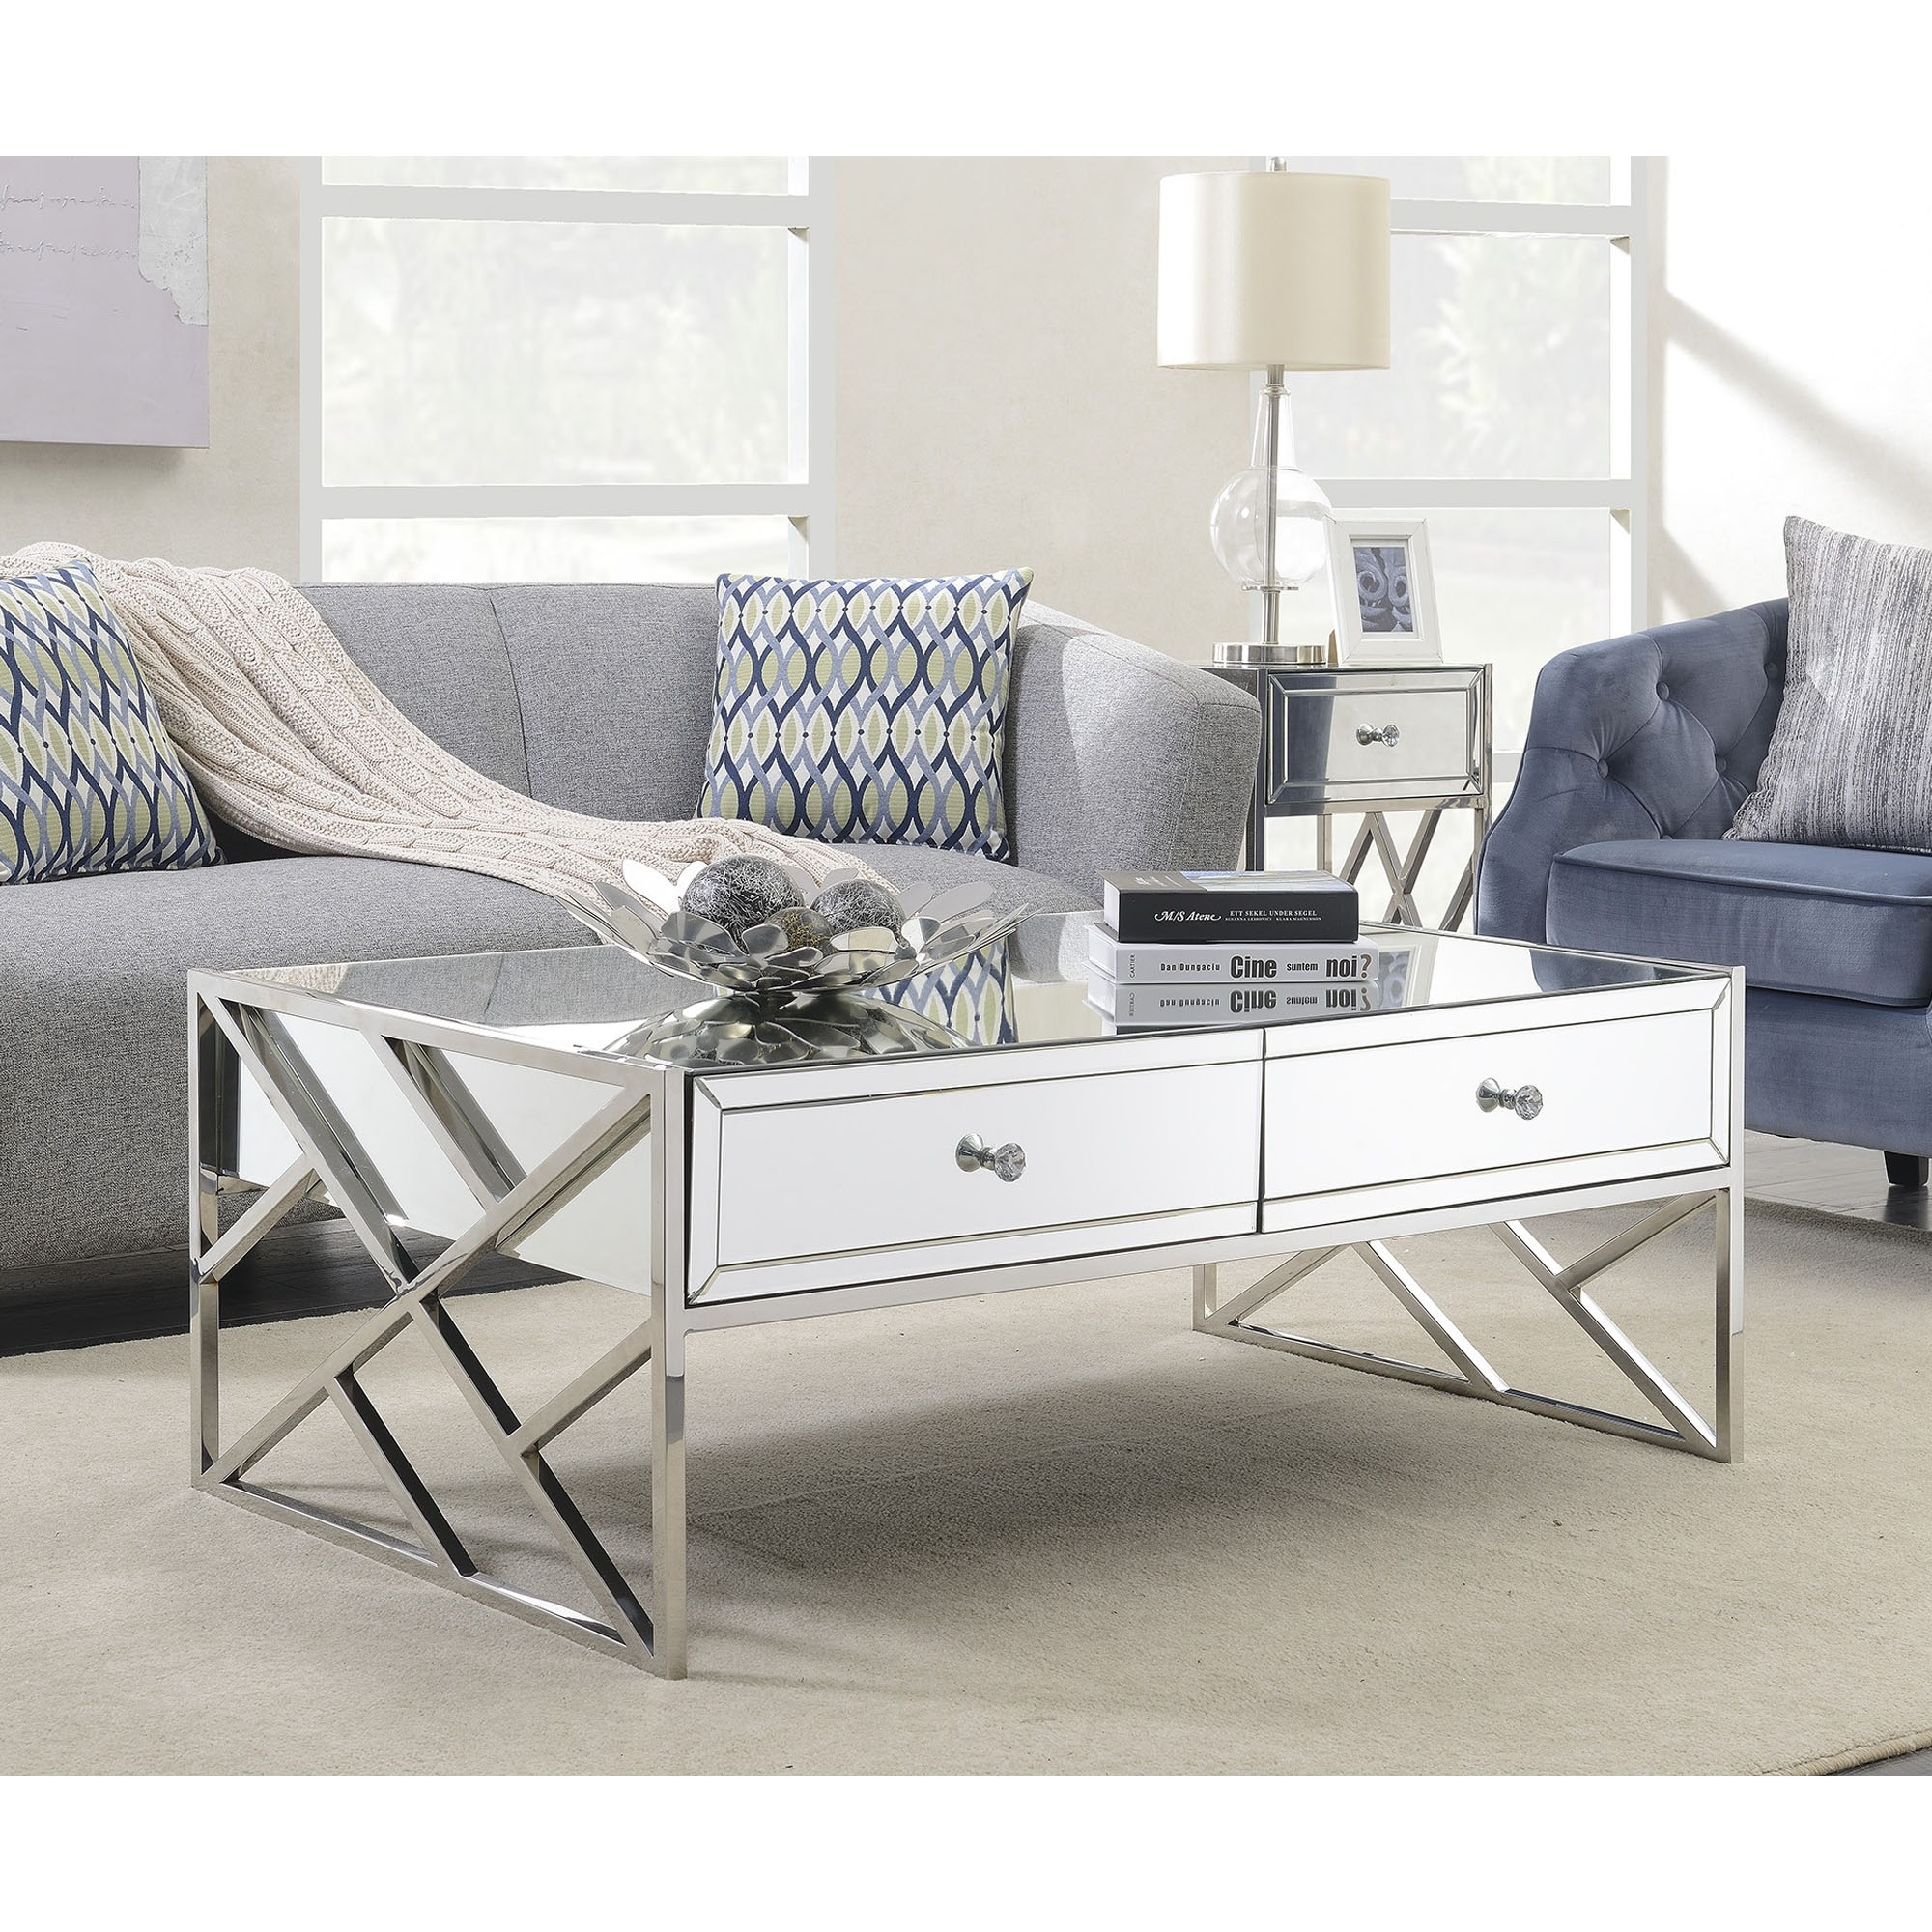 Pacific Mirrored Coffee Table | Coffee Table | HomesDirect365